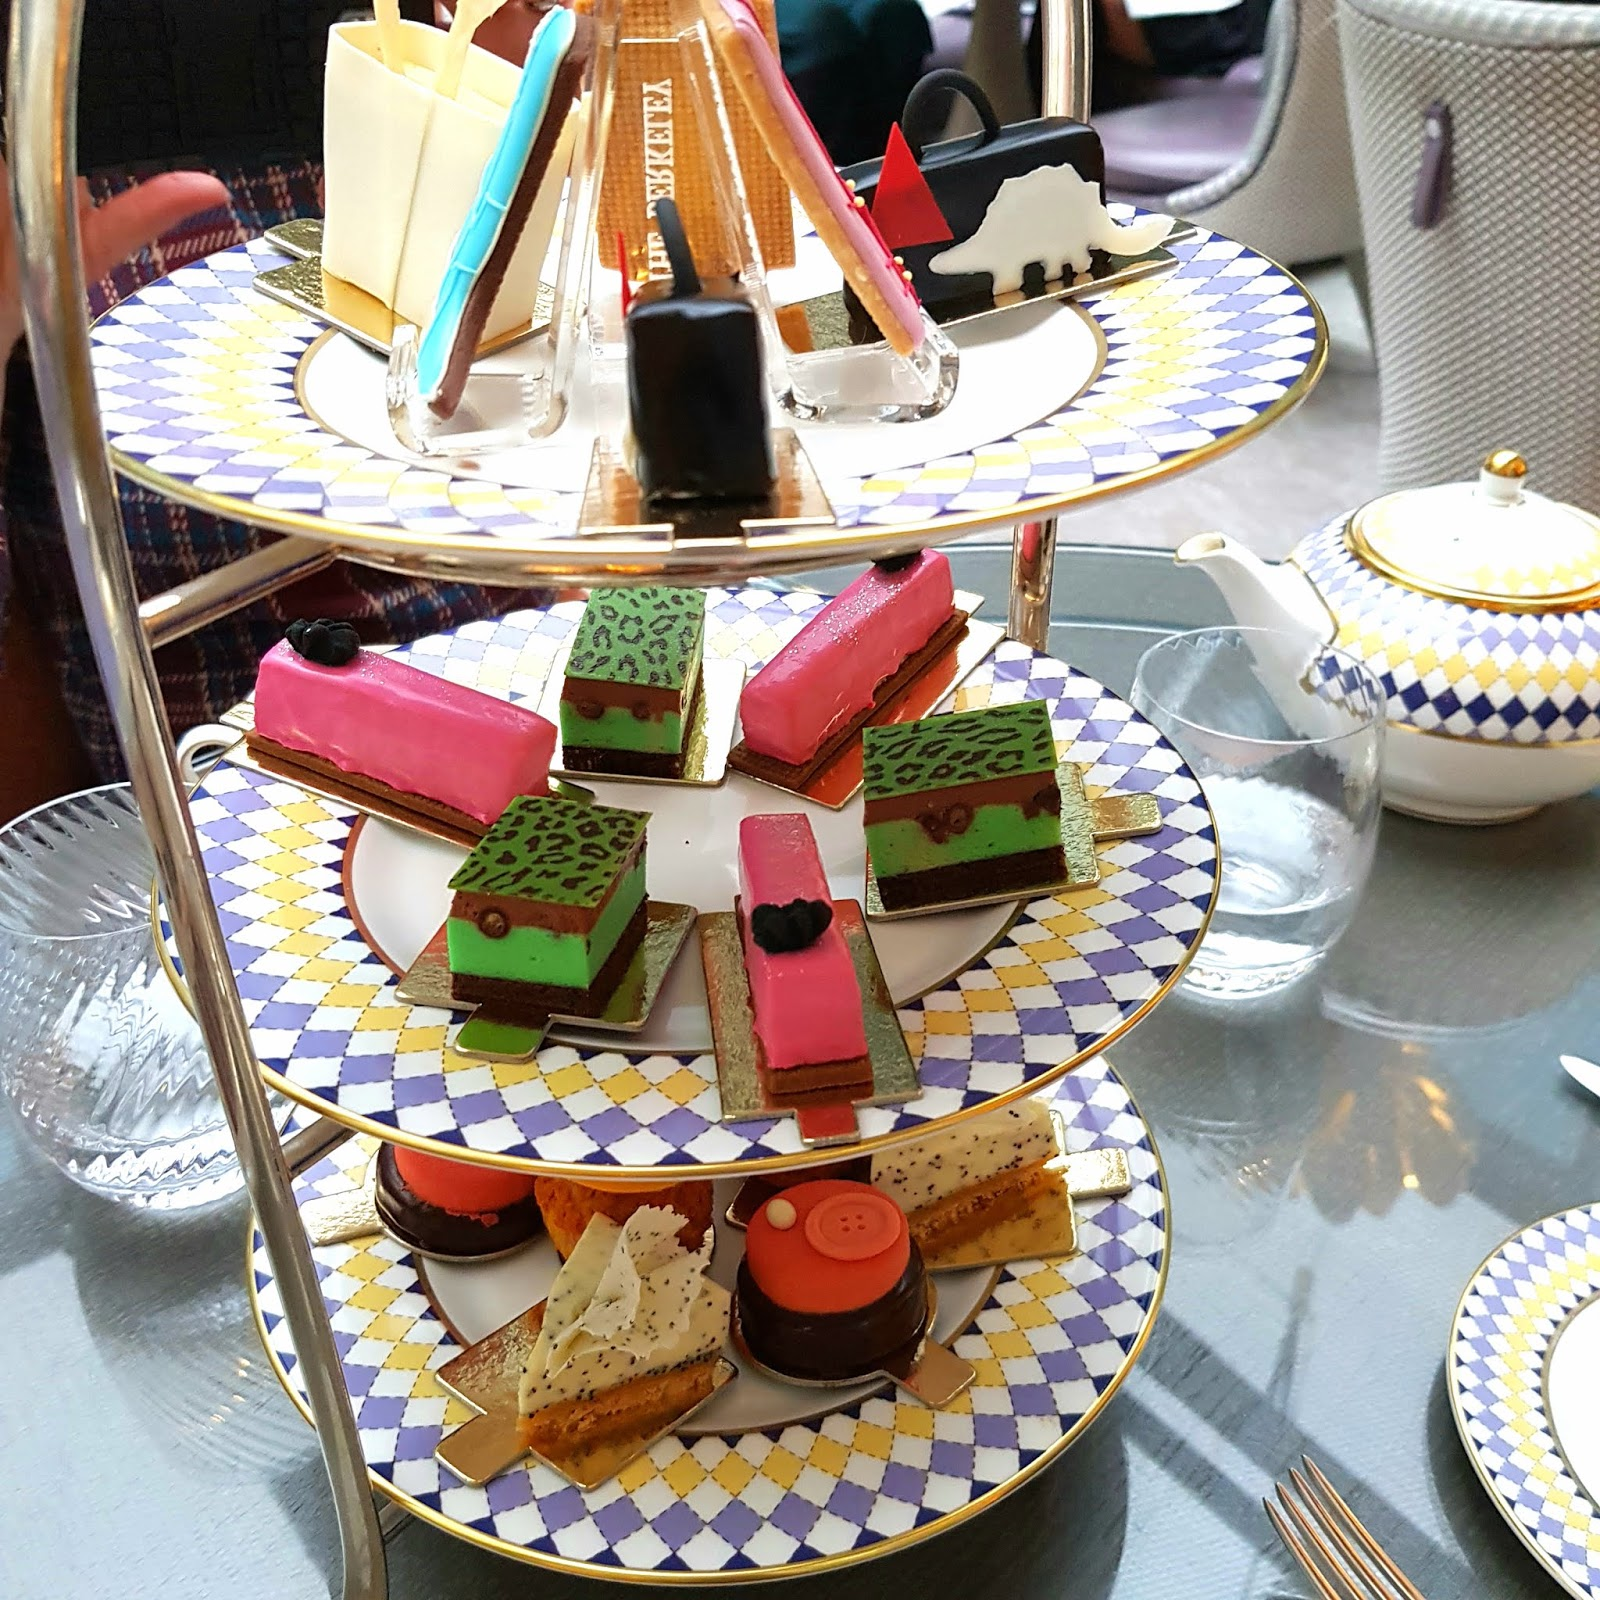 Cake stand featuring cakes with a couture influence at the Berkeley Hotel in London